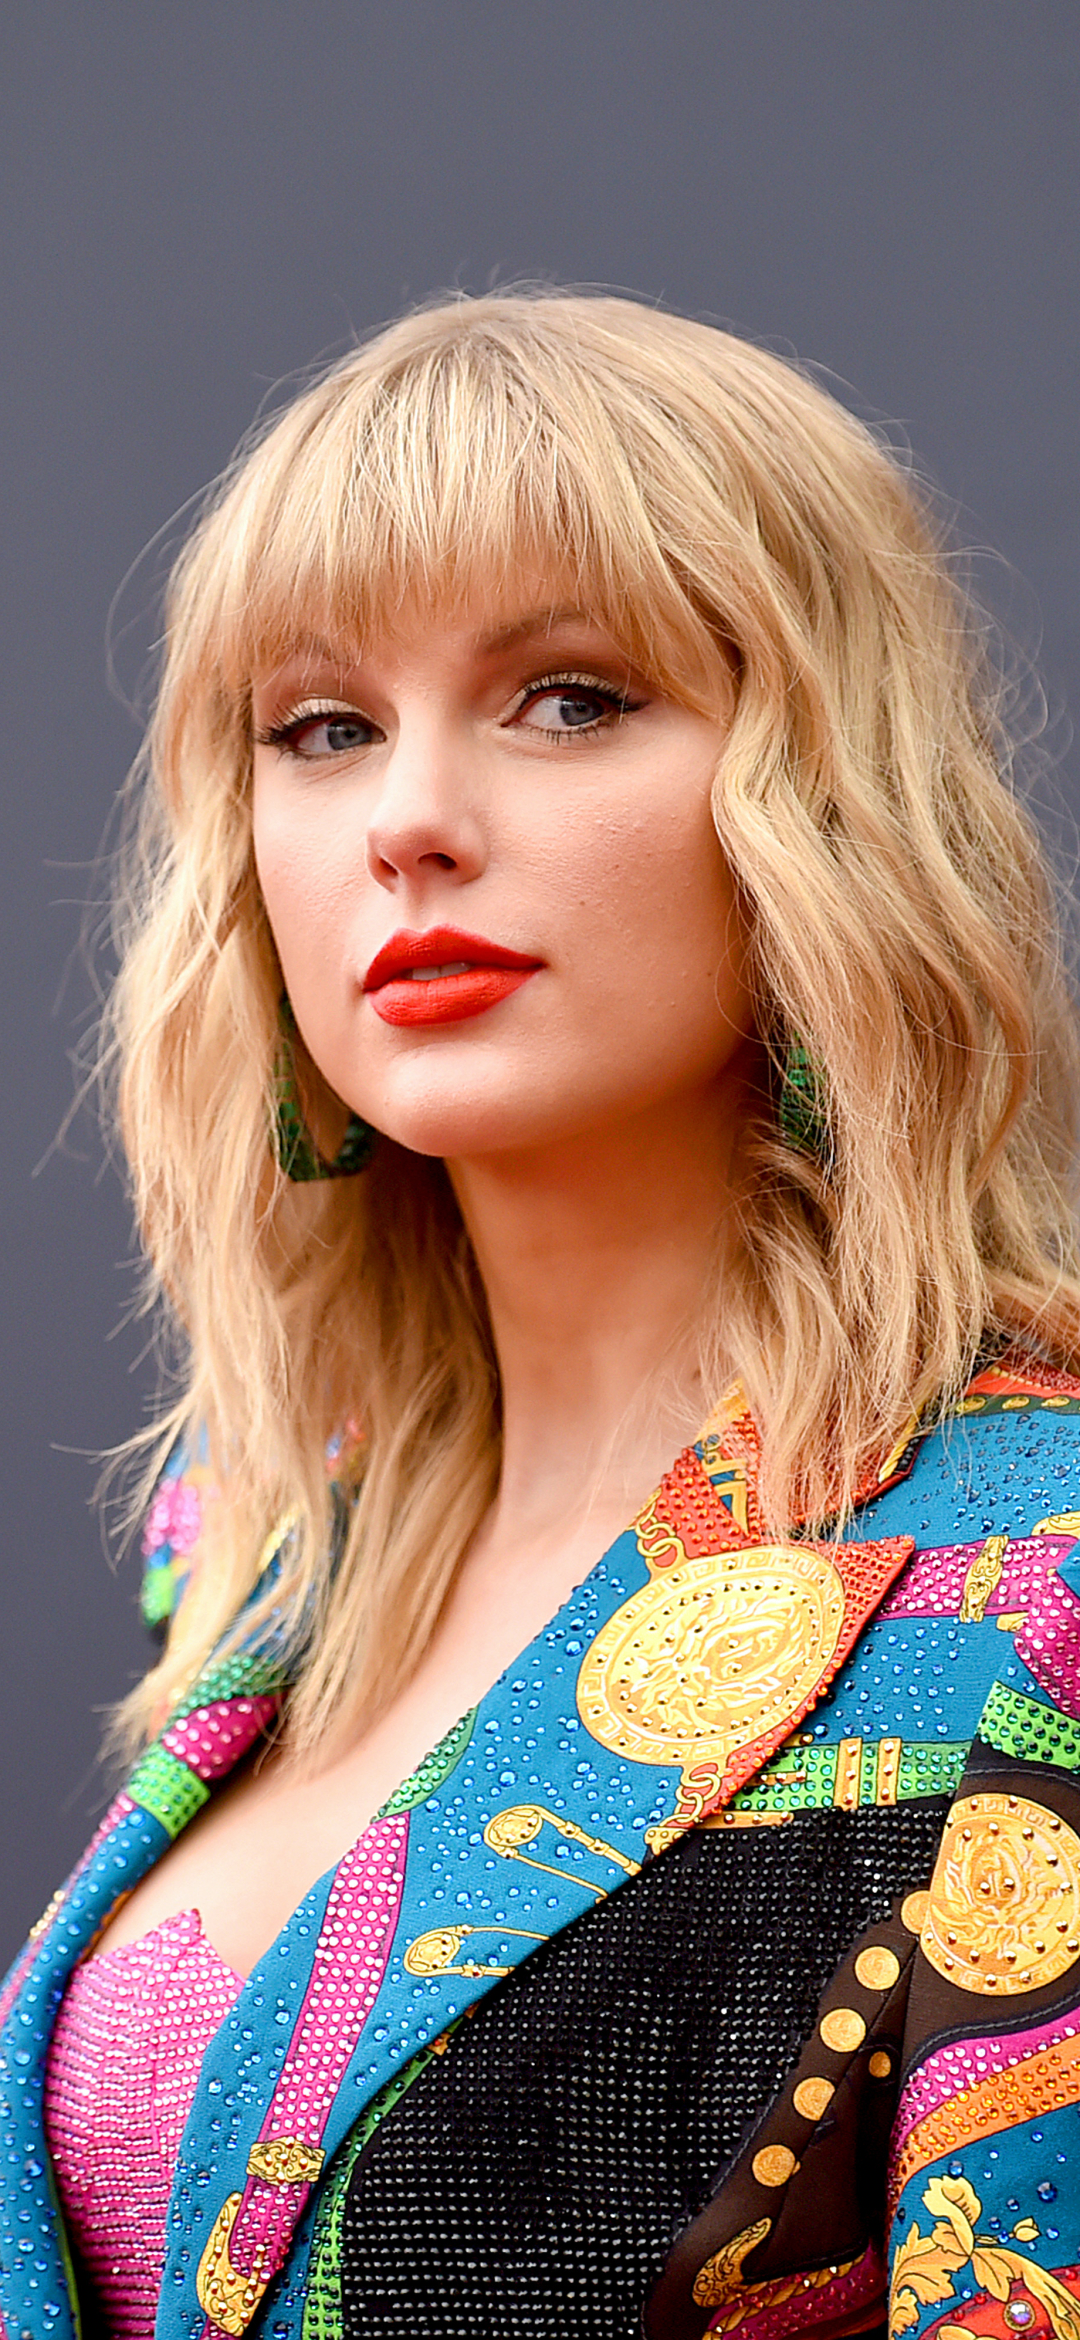 Taylor Swift mobile wallpaper